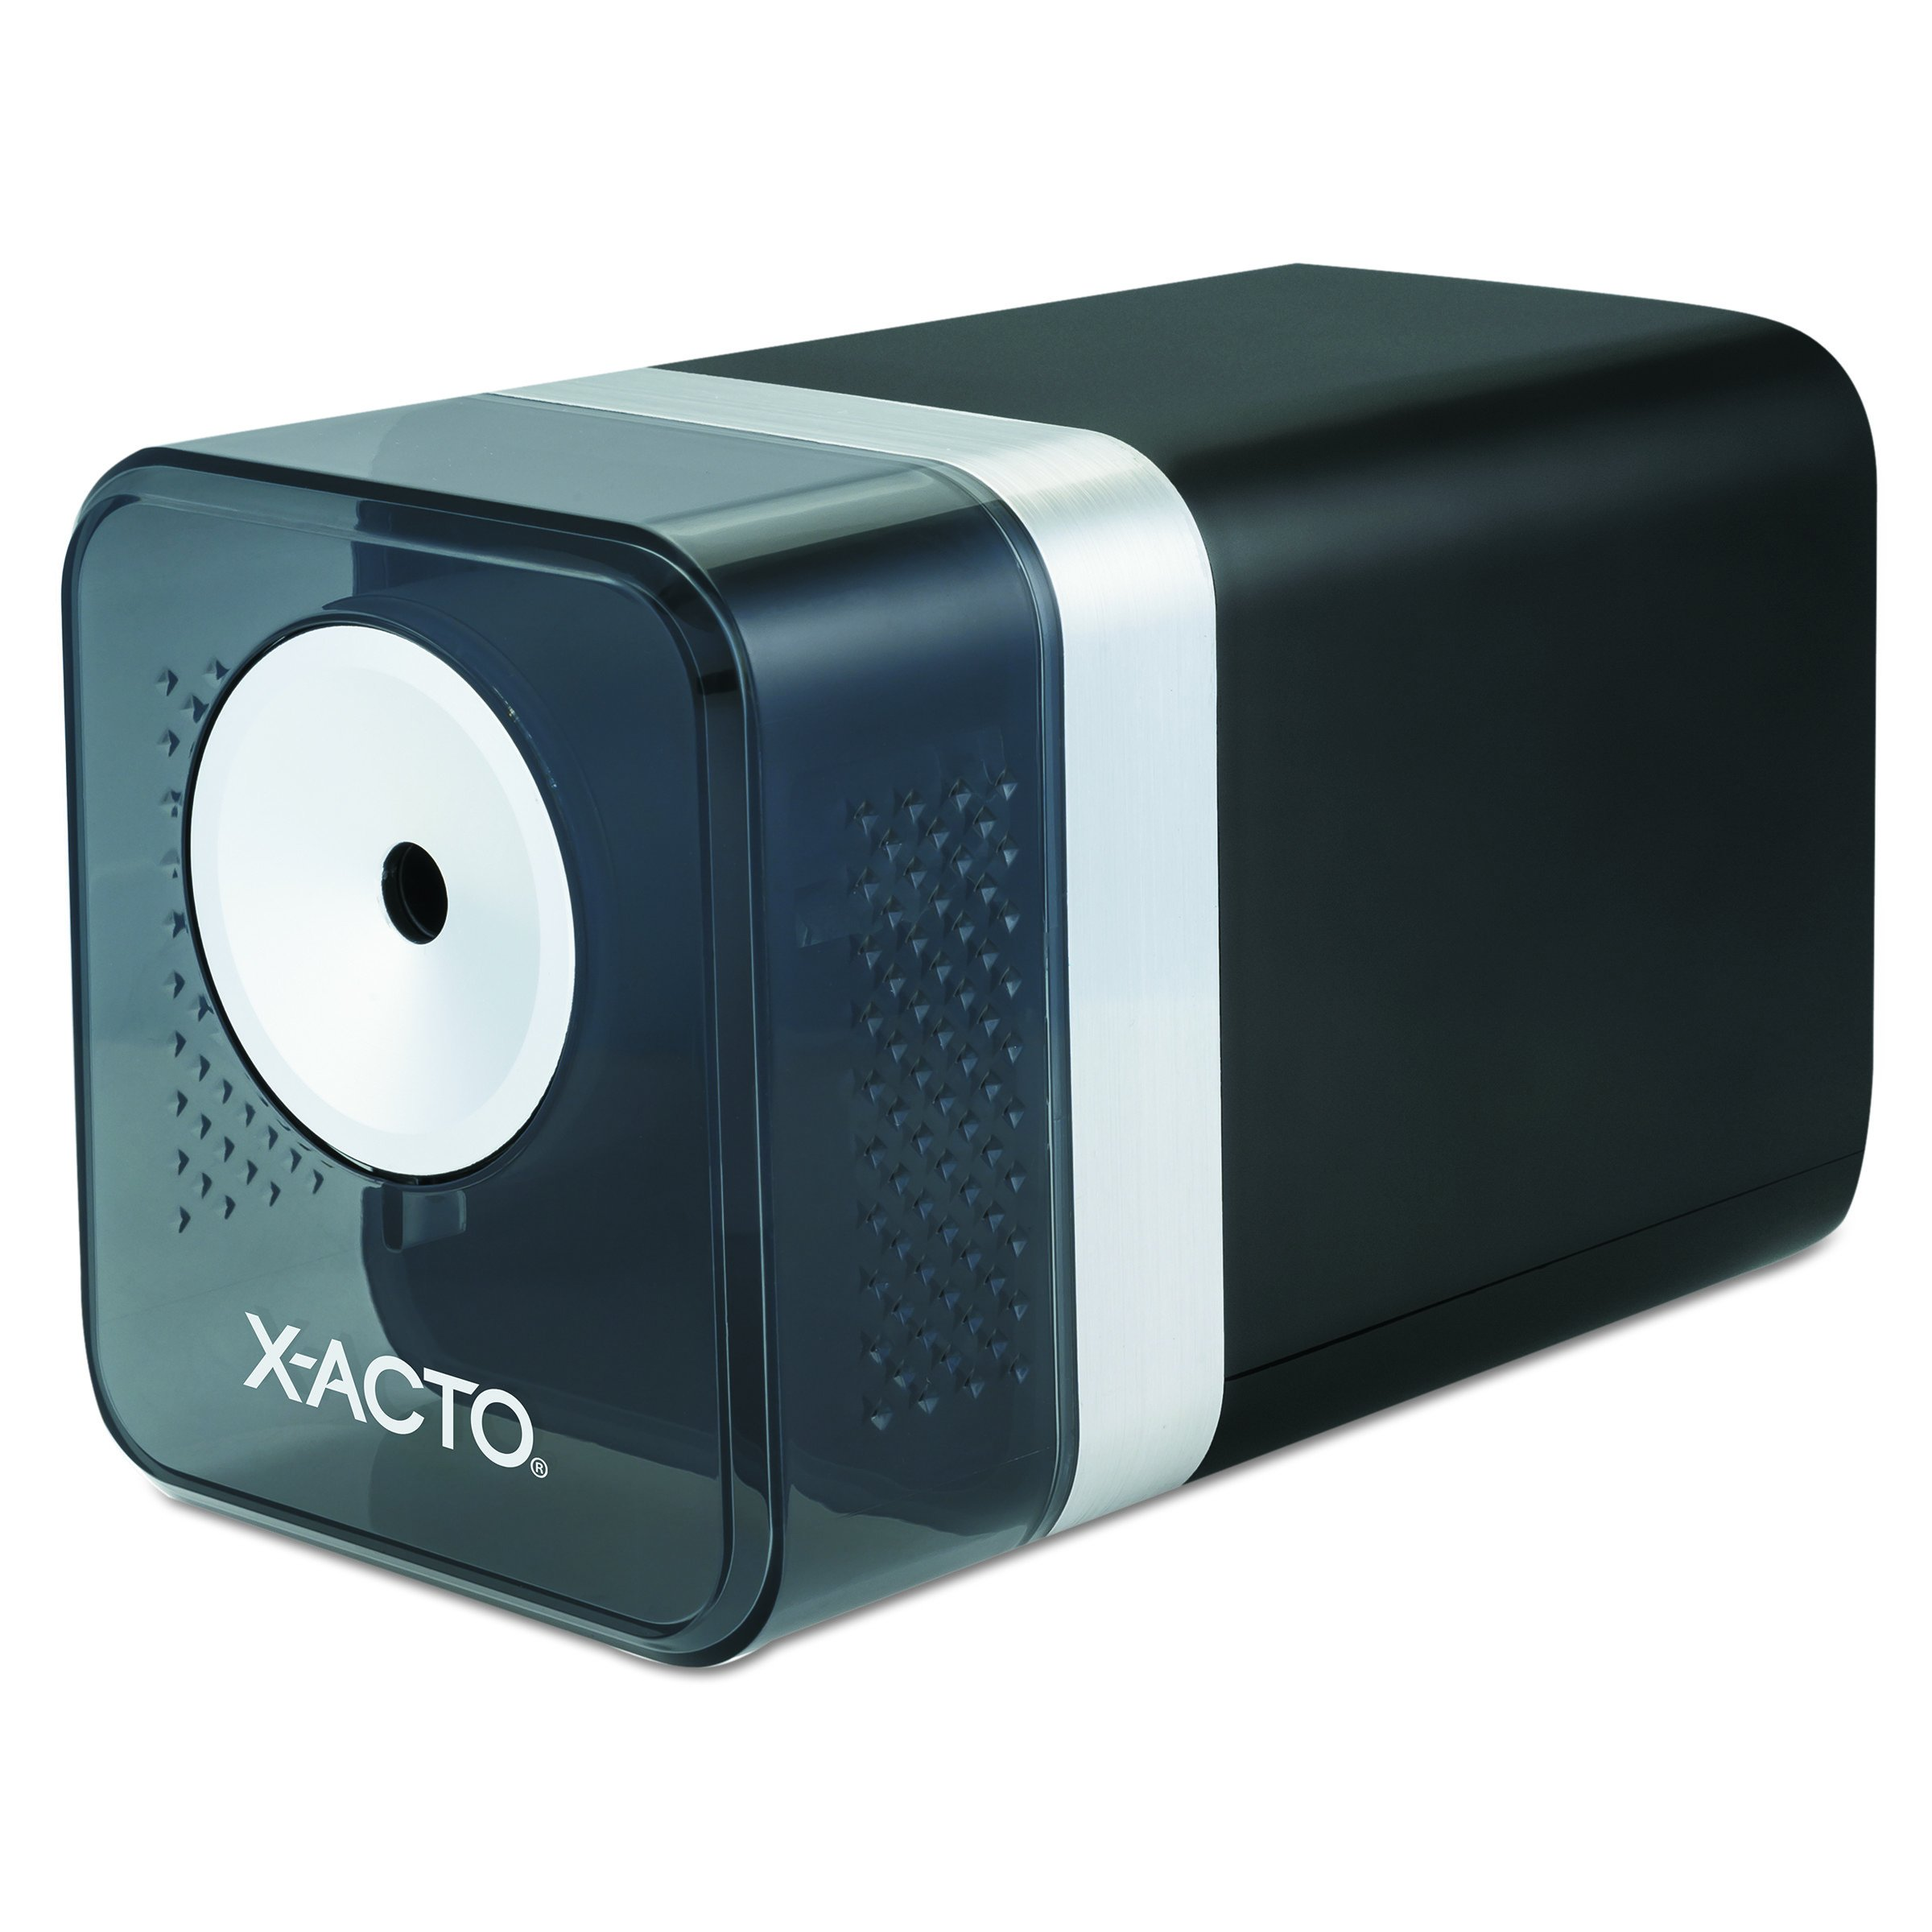 X-ACTO 1744 Power3 Office Electric Pencil Sharpener, Black